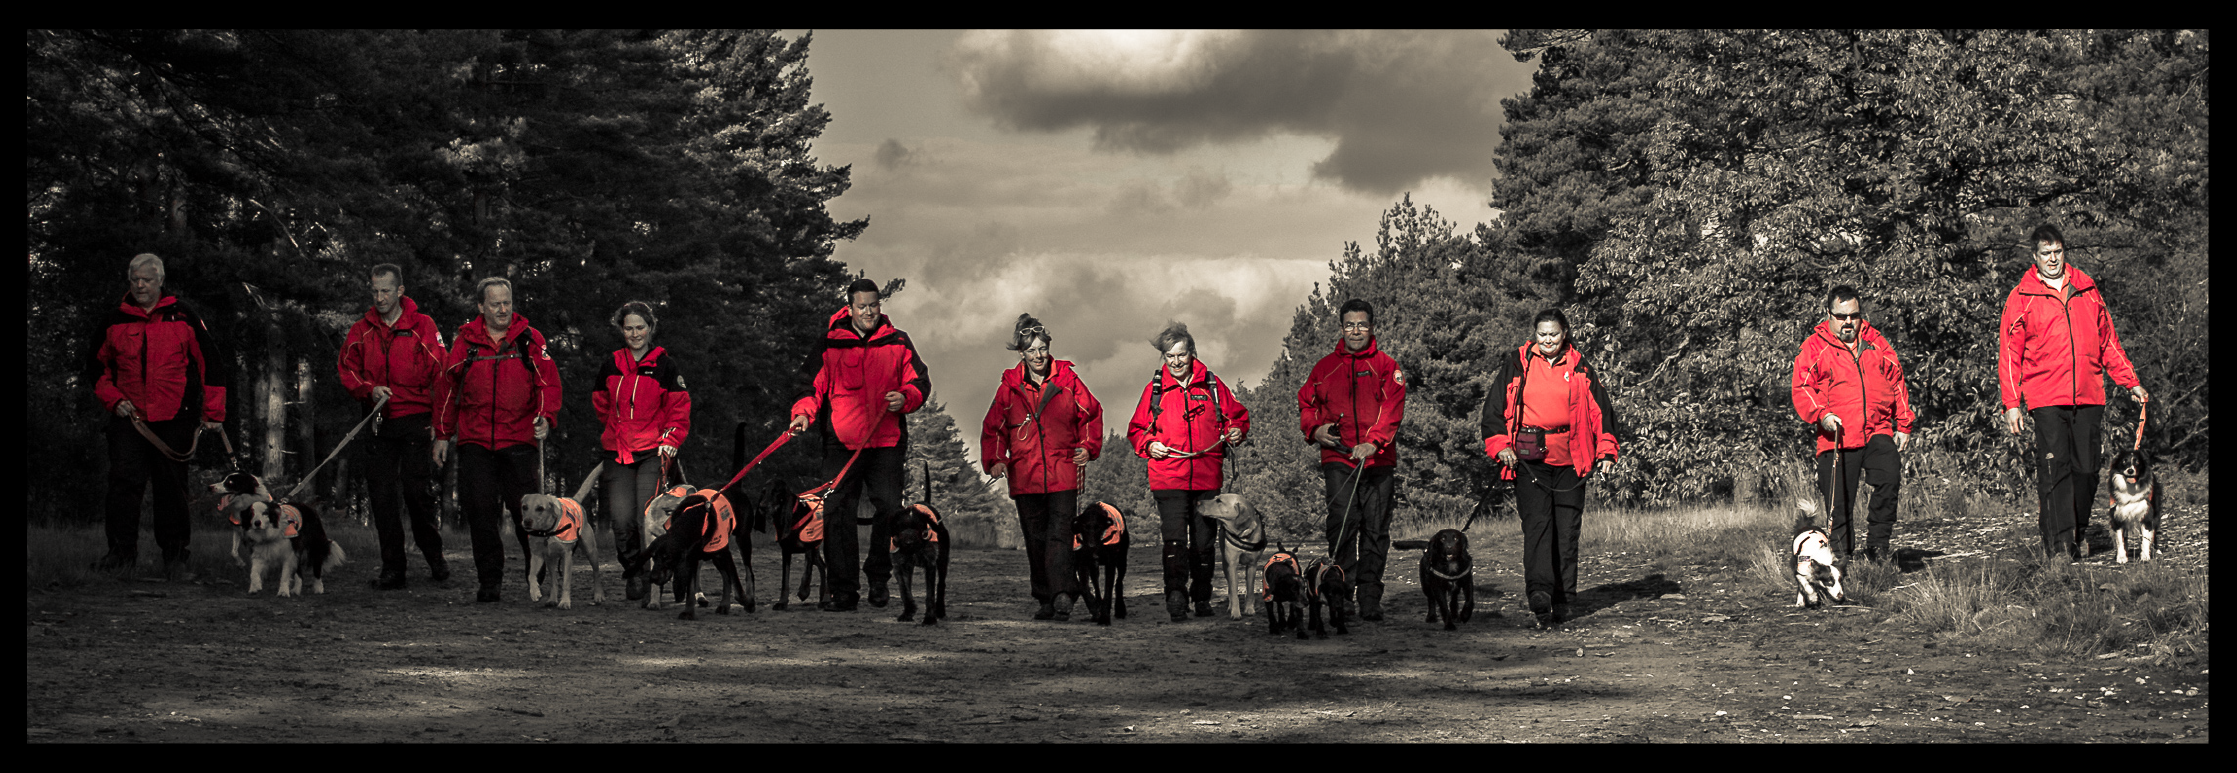 Berkshire Search & Rescue Dogs - BSARD